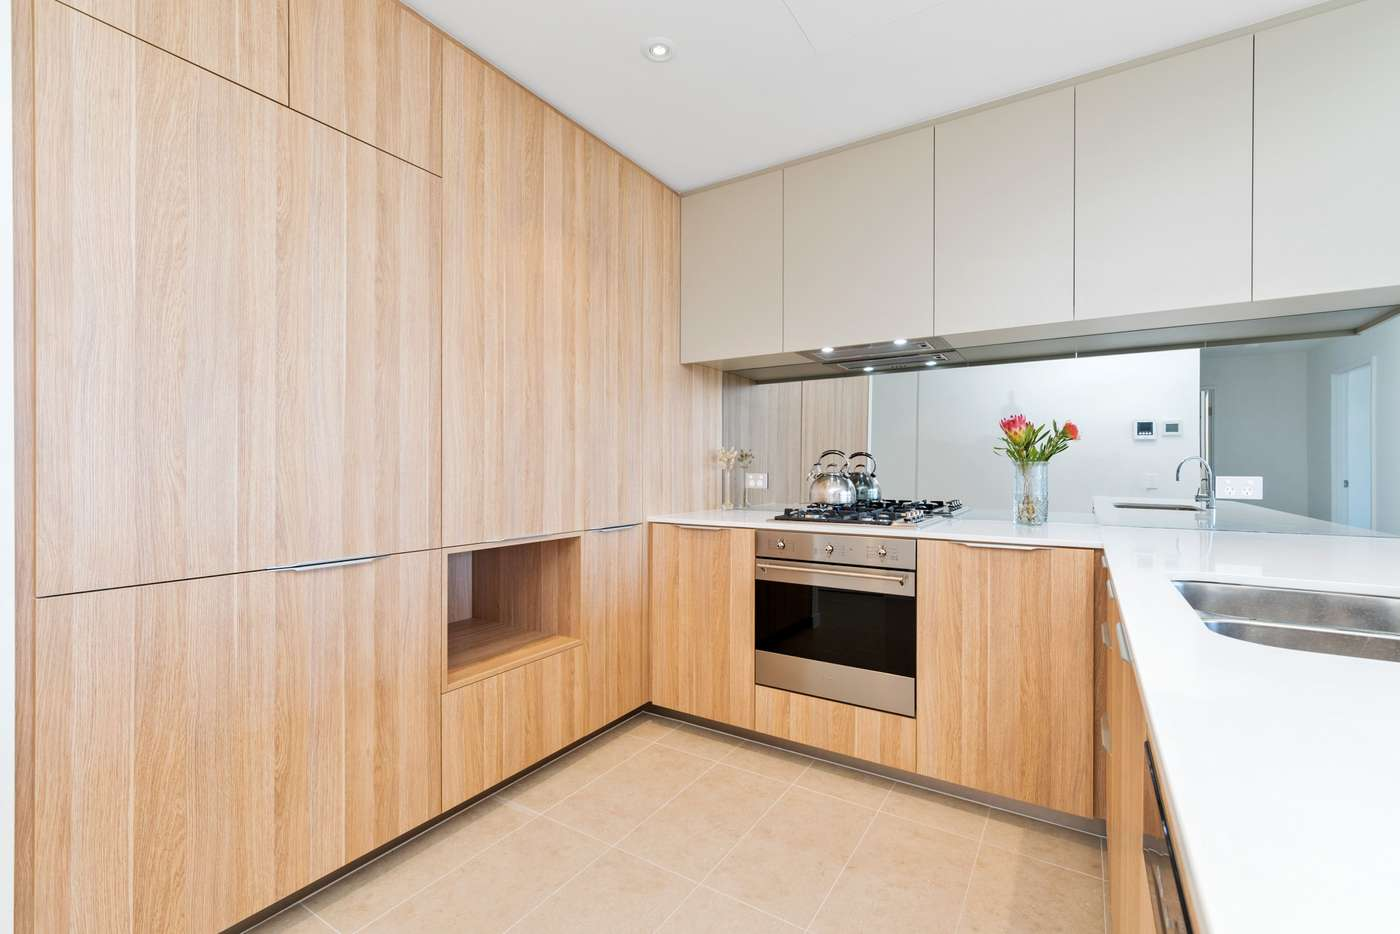 Sixth view of Homely apartment listing, 214/17 Freeman Loop, North Fremantle WA 6159